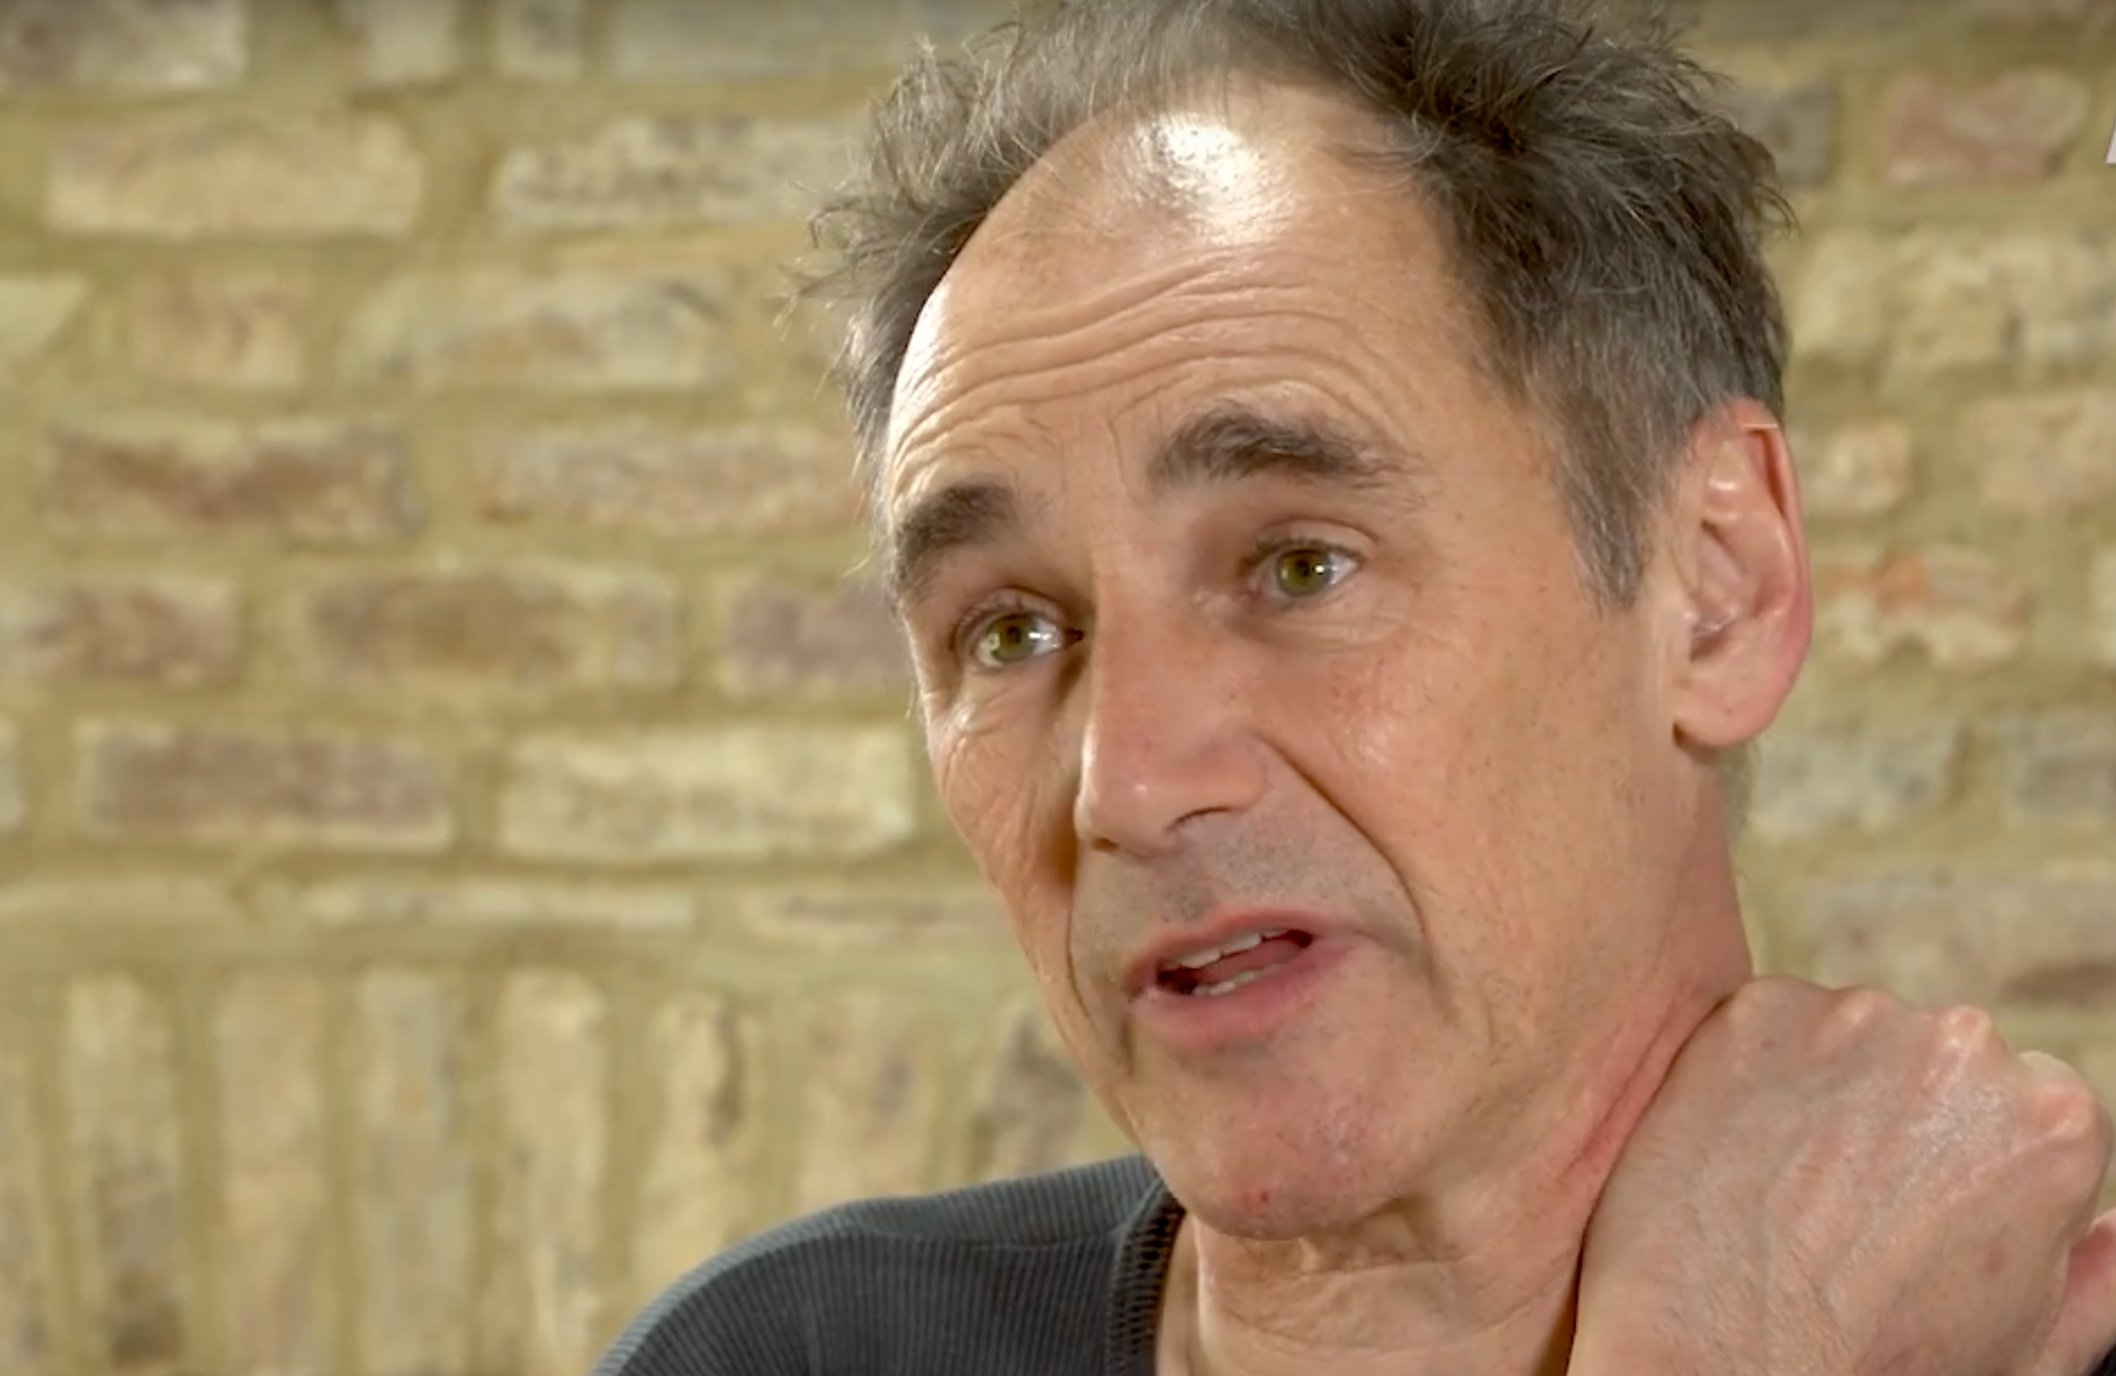 Sir Mark Rylance talks about veganism and animal rights for PETA